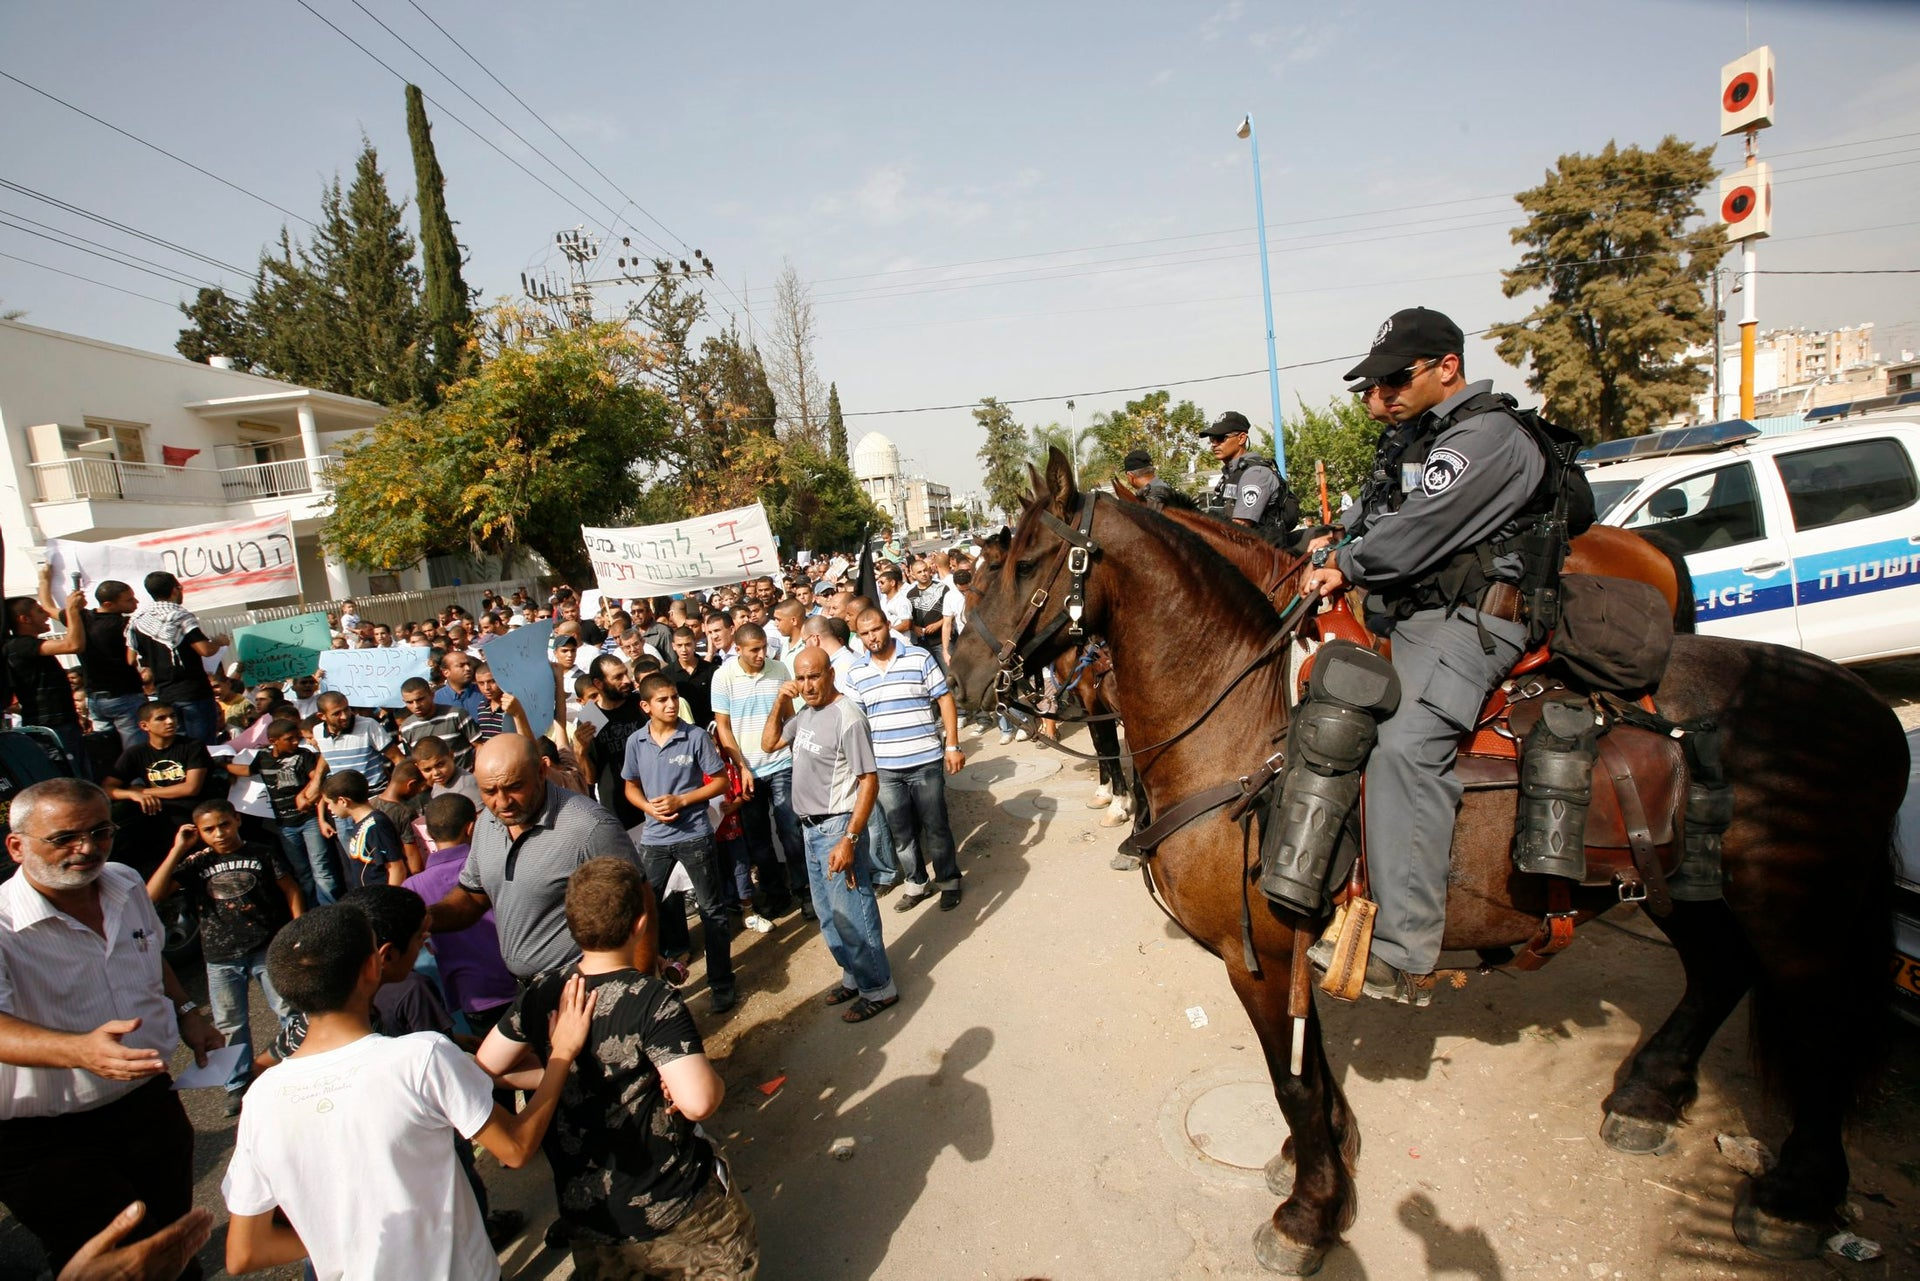 Lod residents protest the police's failure to curb gun violence, 2010. Demonstrators hold a sign saying 'The police is the prime suspect.'